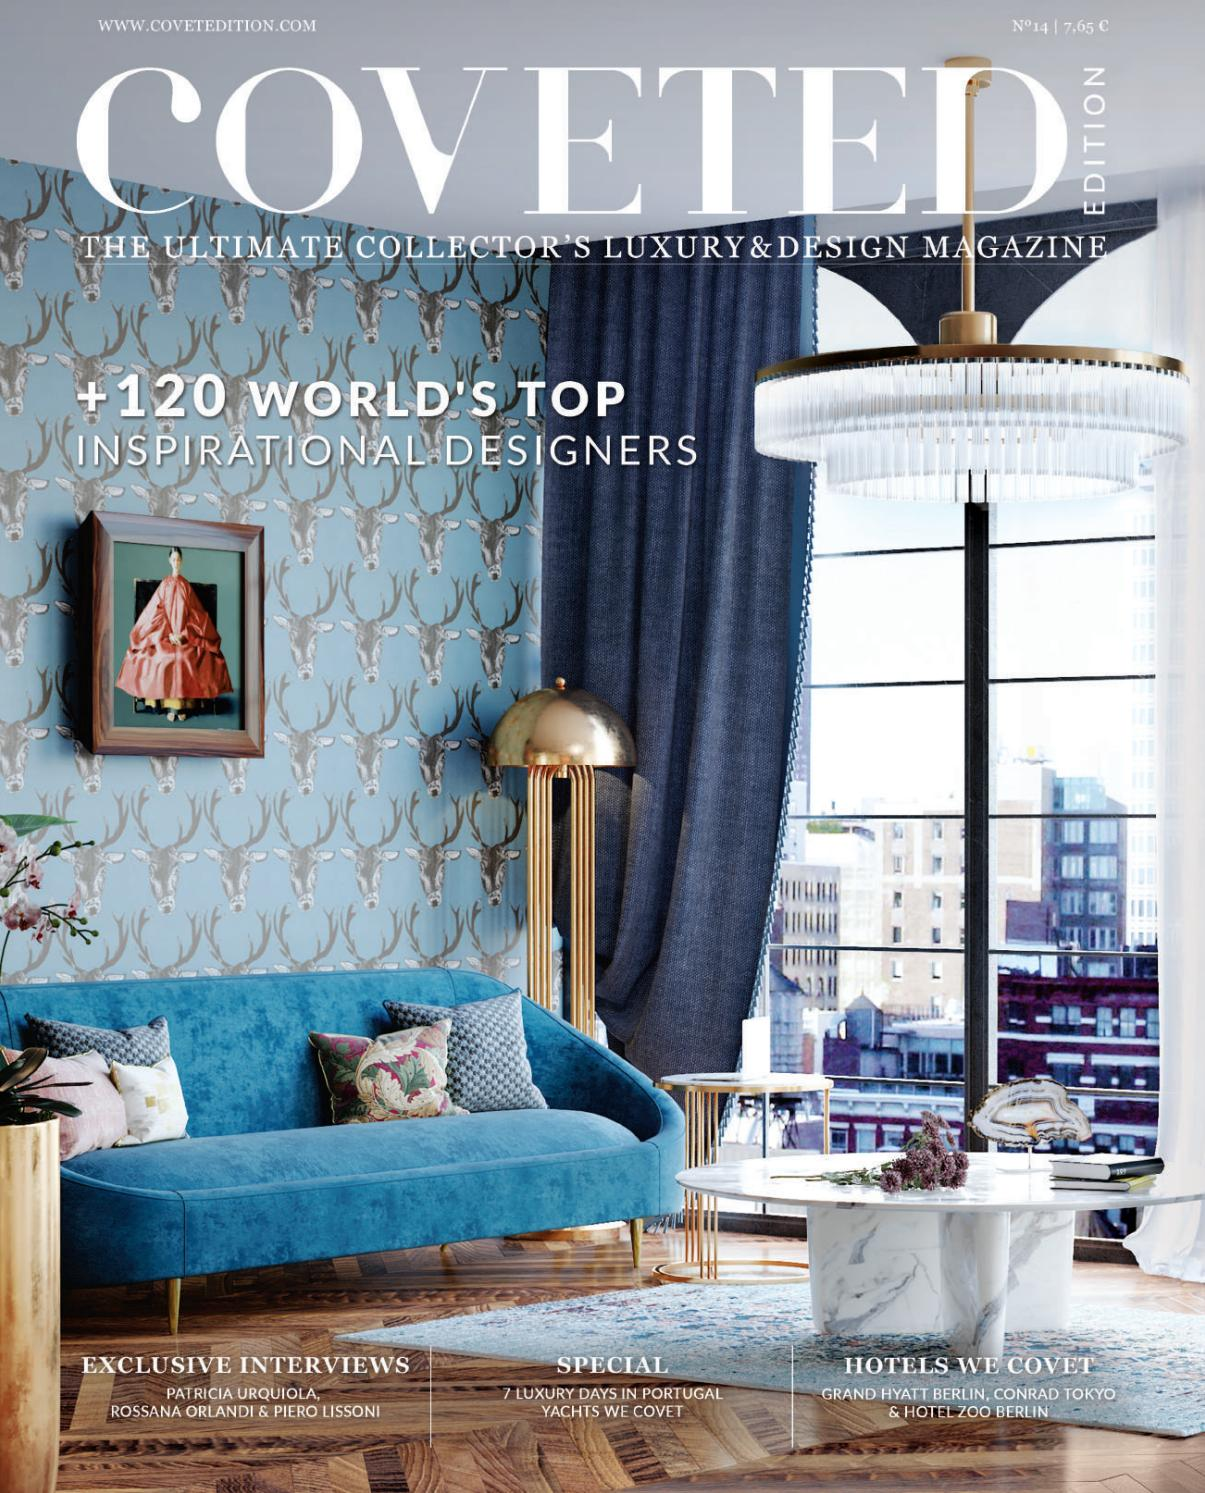 Coveted Magazine 14th Edition By Trend